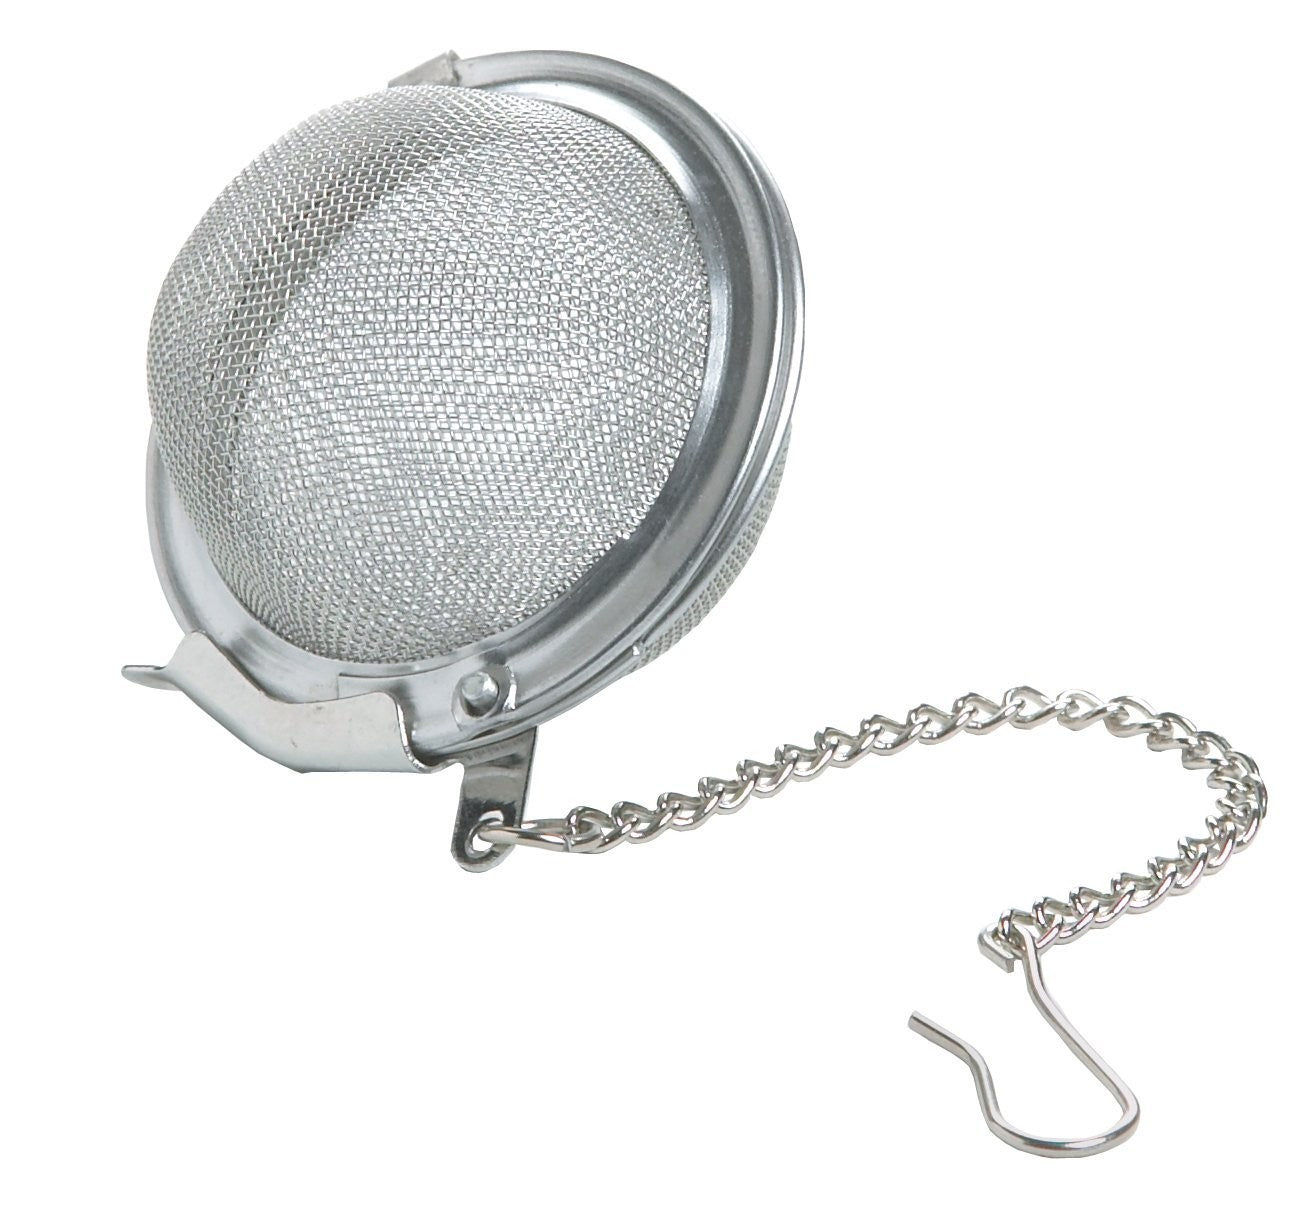 TEA BALL INFUSER (STAINLESS STEEL) - Red's Kitchen Sink